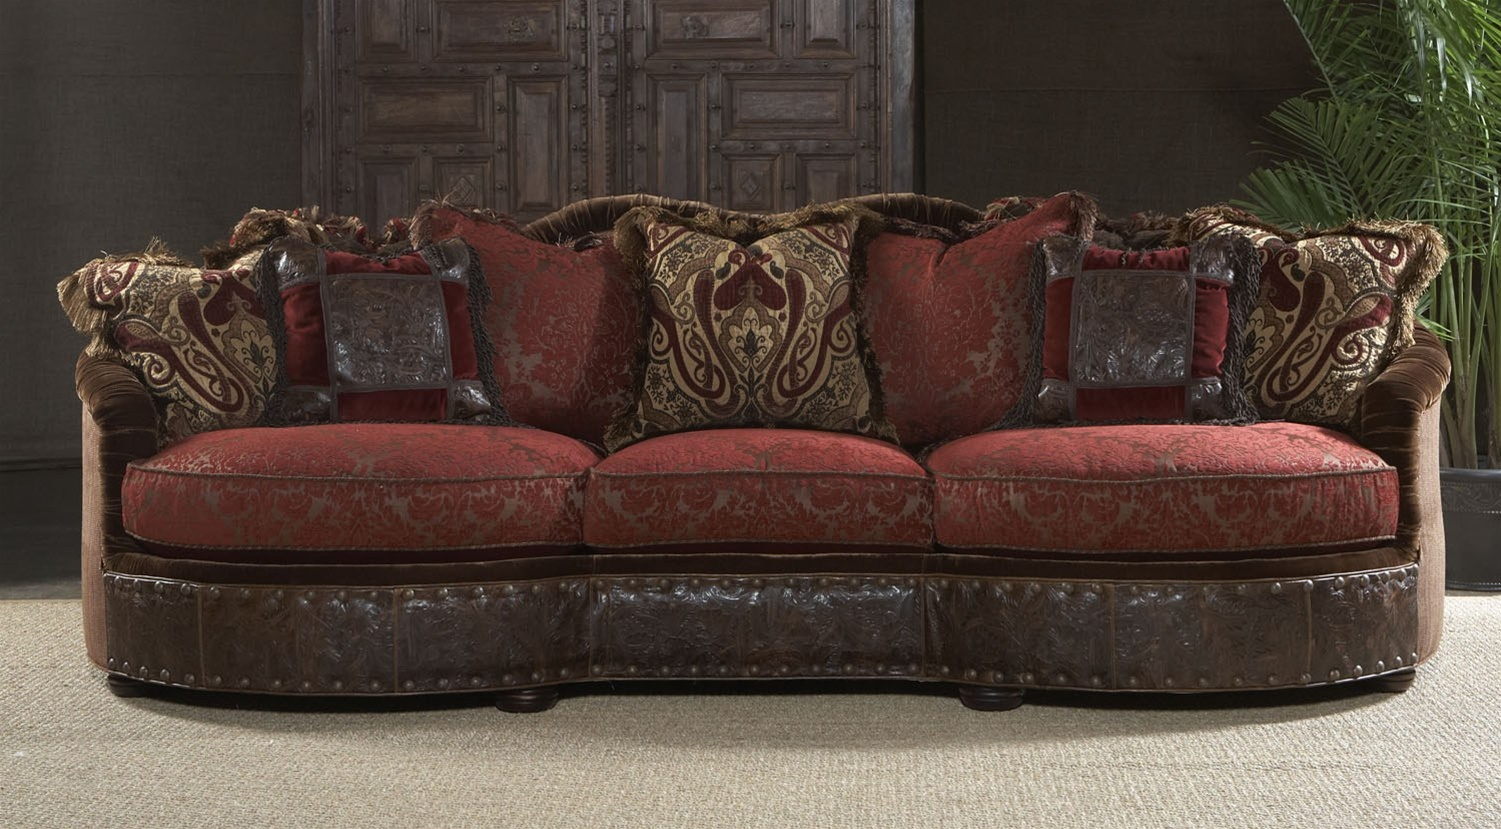 Chesterfield Leather Sofa Used Images